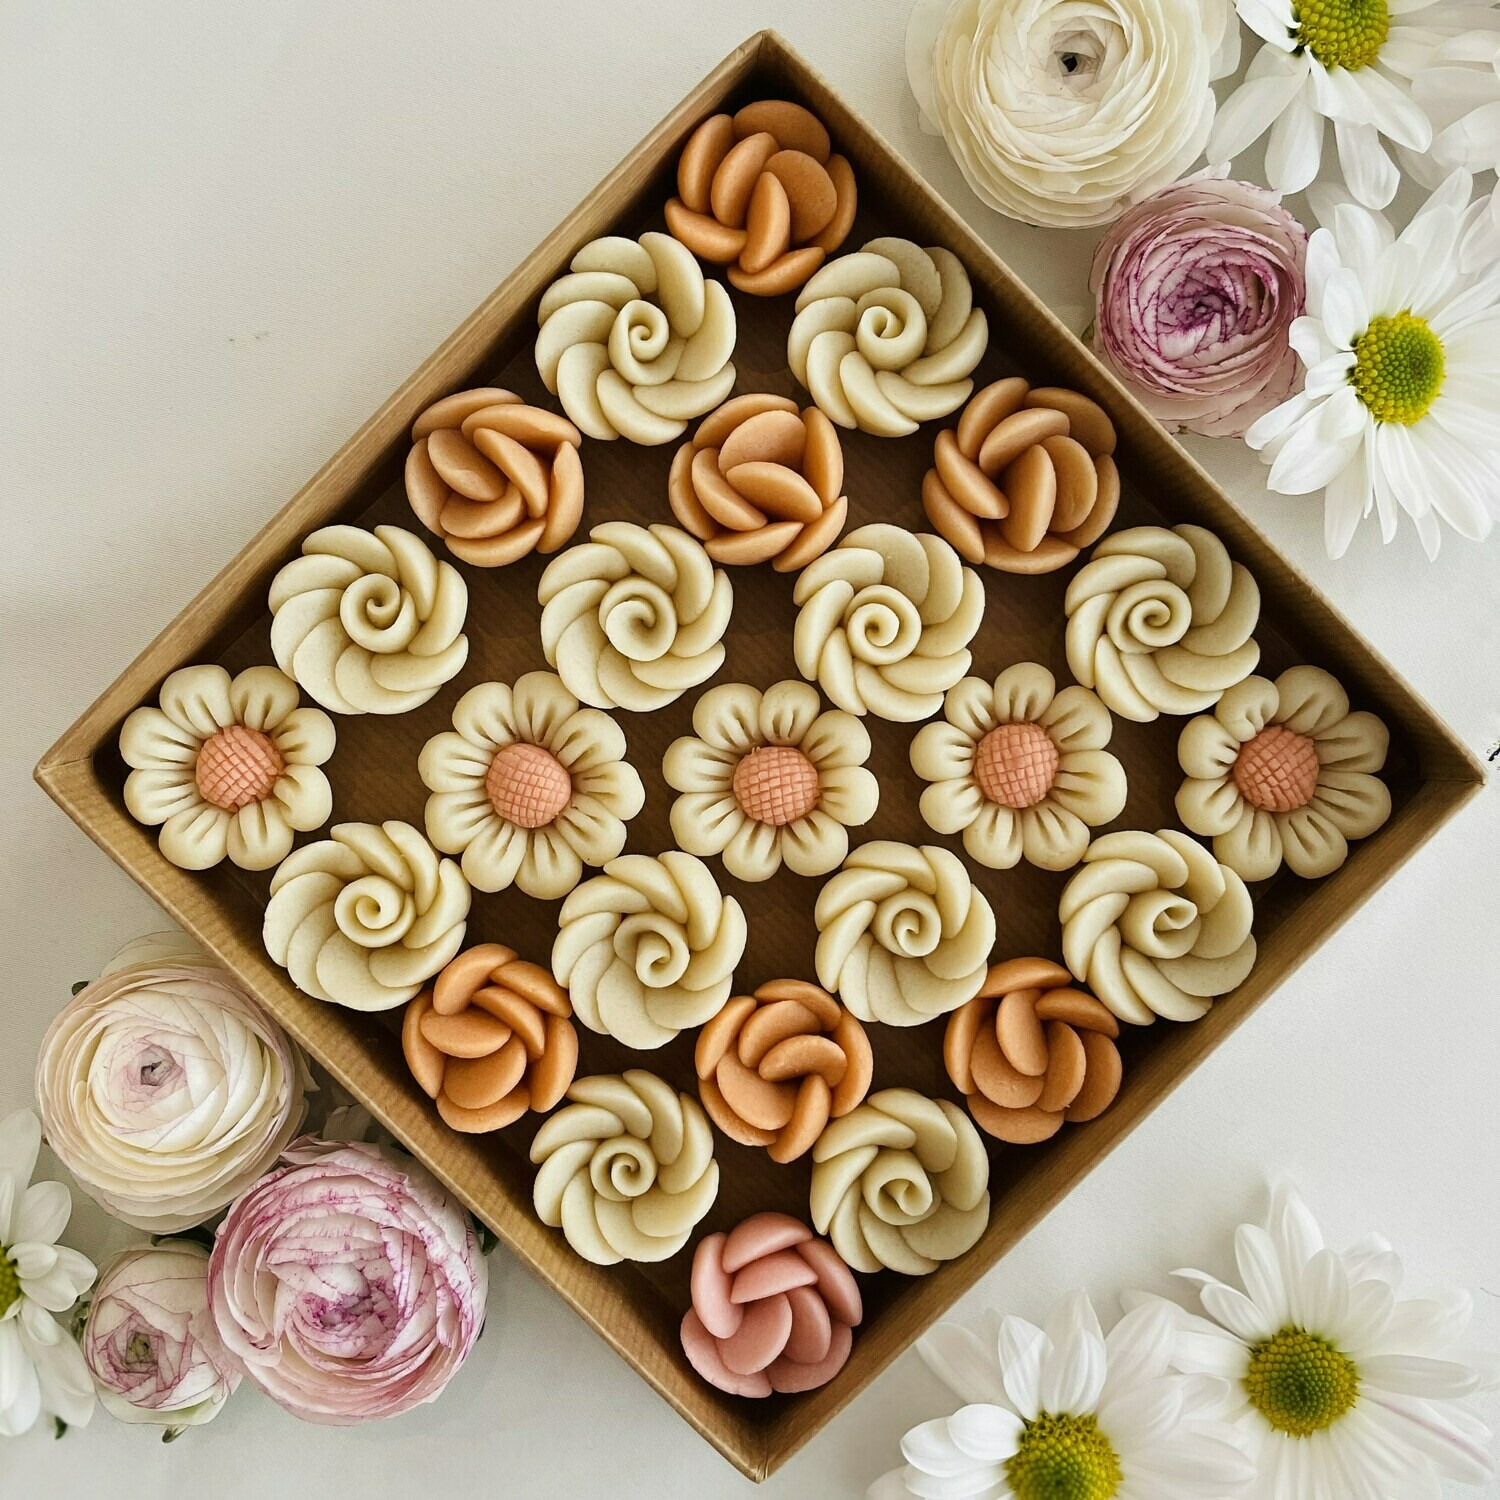 Marzipan Handcrafted Flowers and Daisies (Box) - Le Marzipan de Zouk